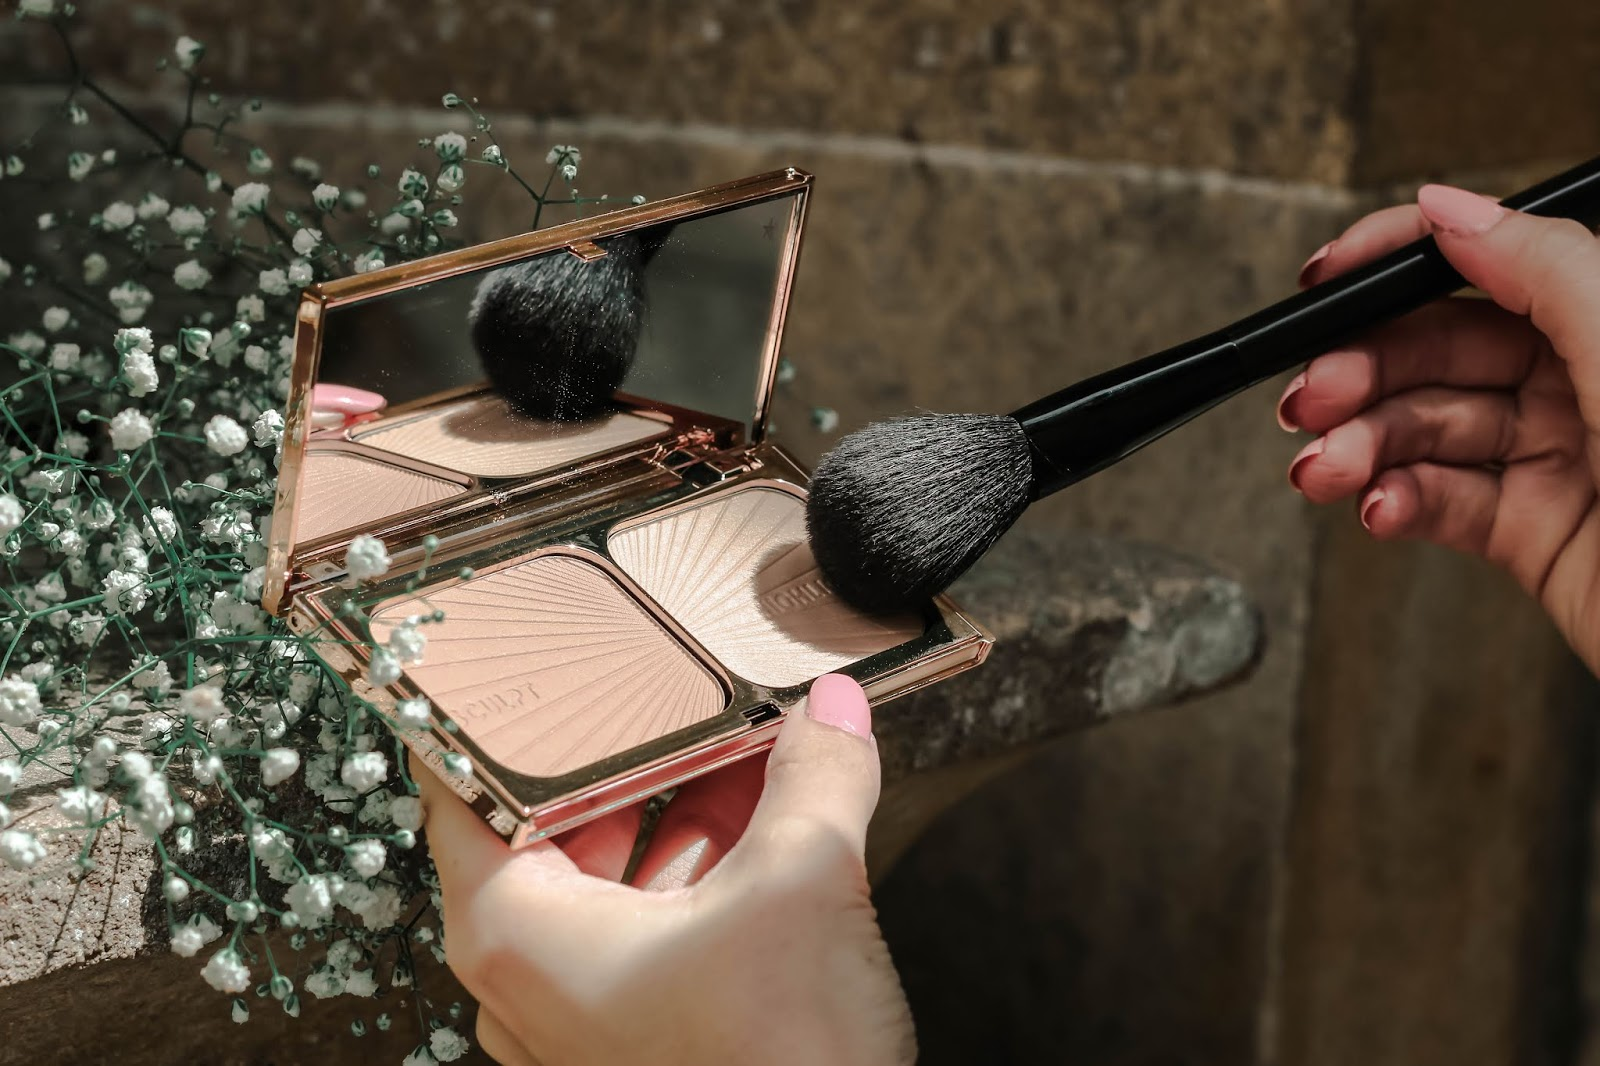 Charlotte Tilbury Bronze & Glow Palette Photography